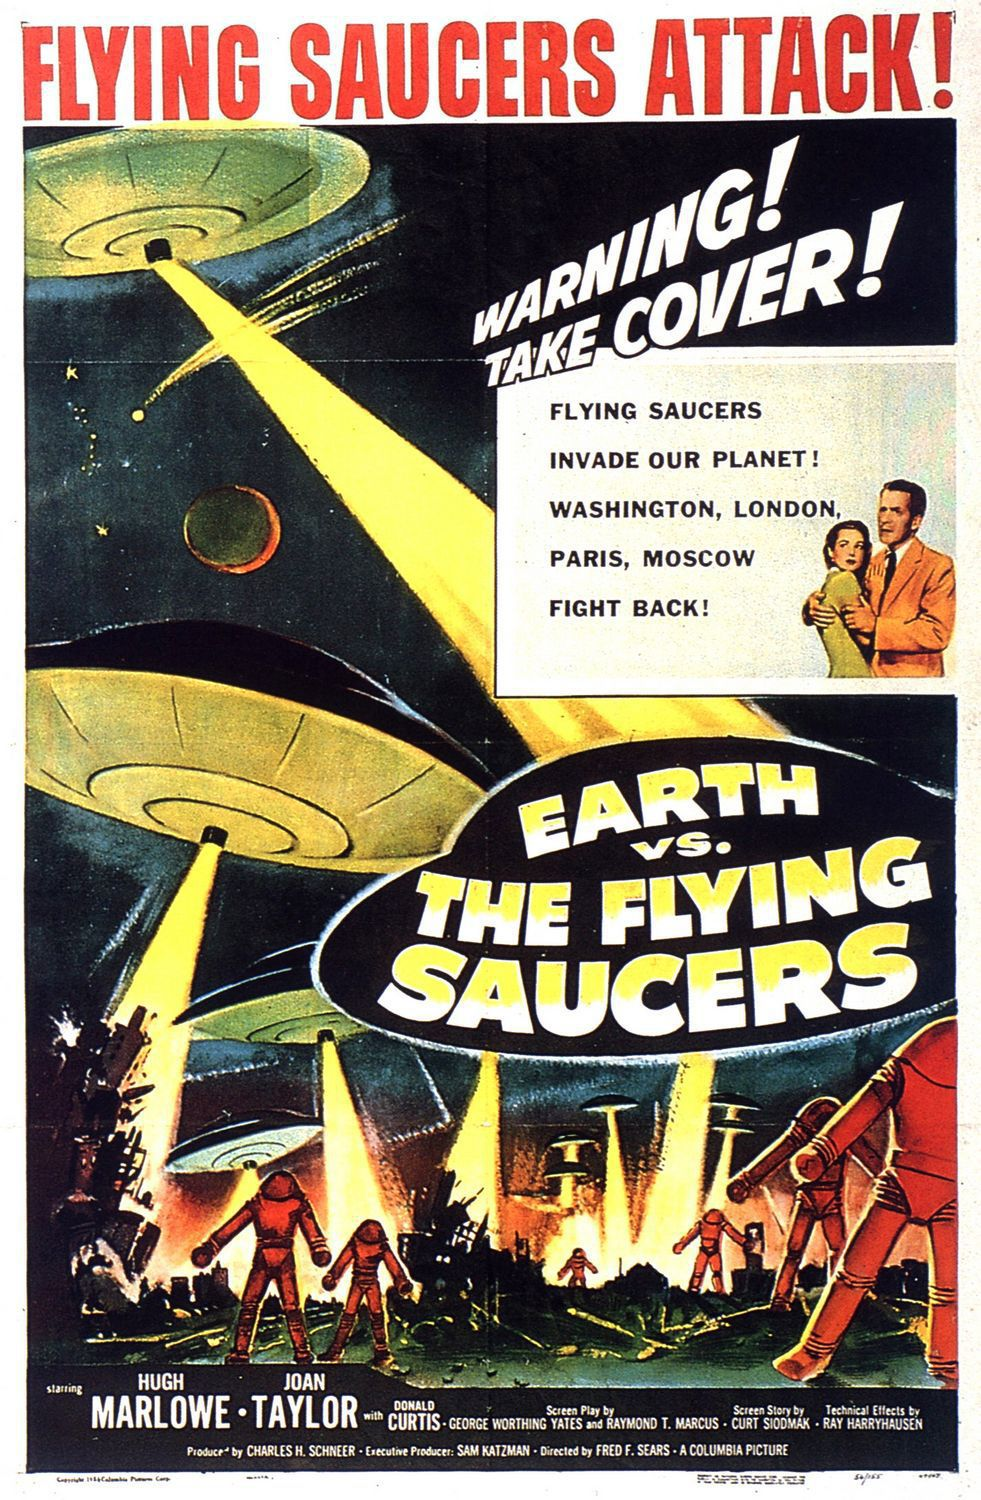 Earth vs the Flying Saucers (1956) - classic cult scifi fantascienza film poster